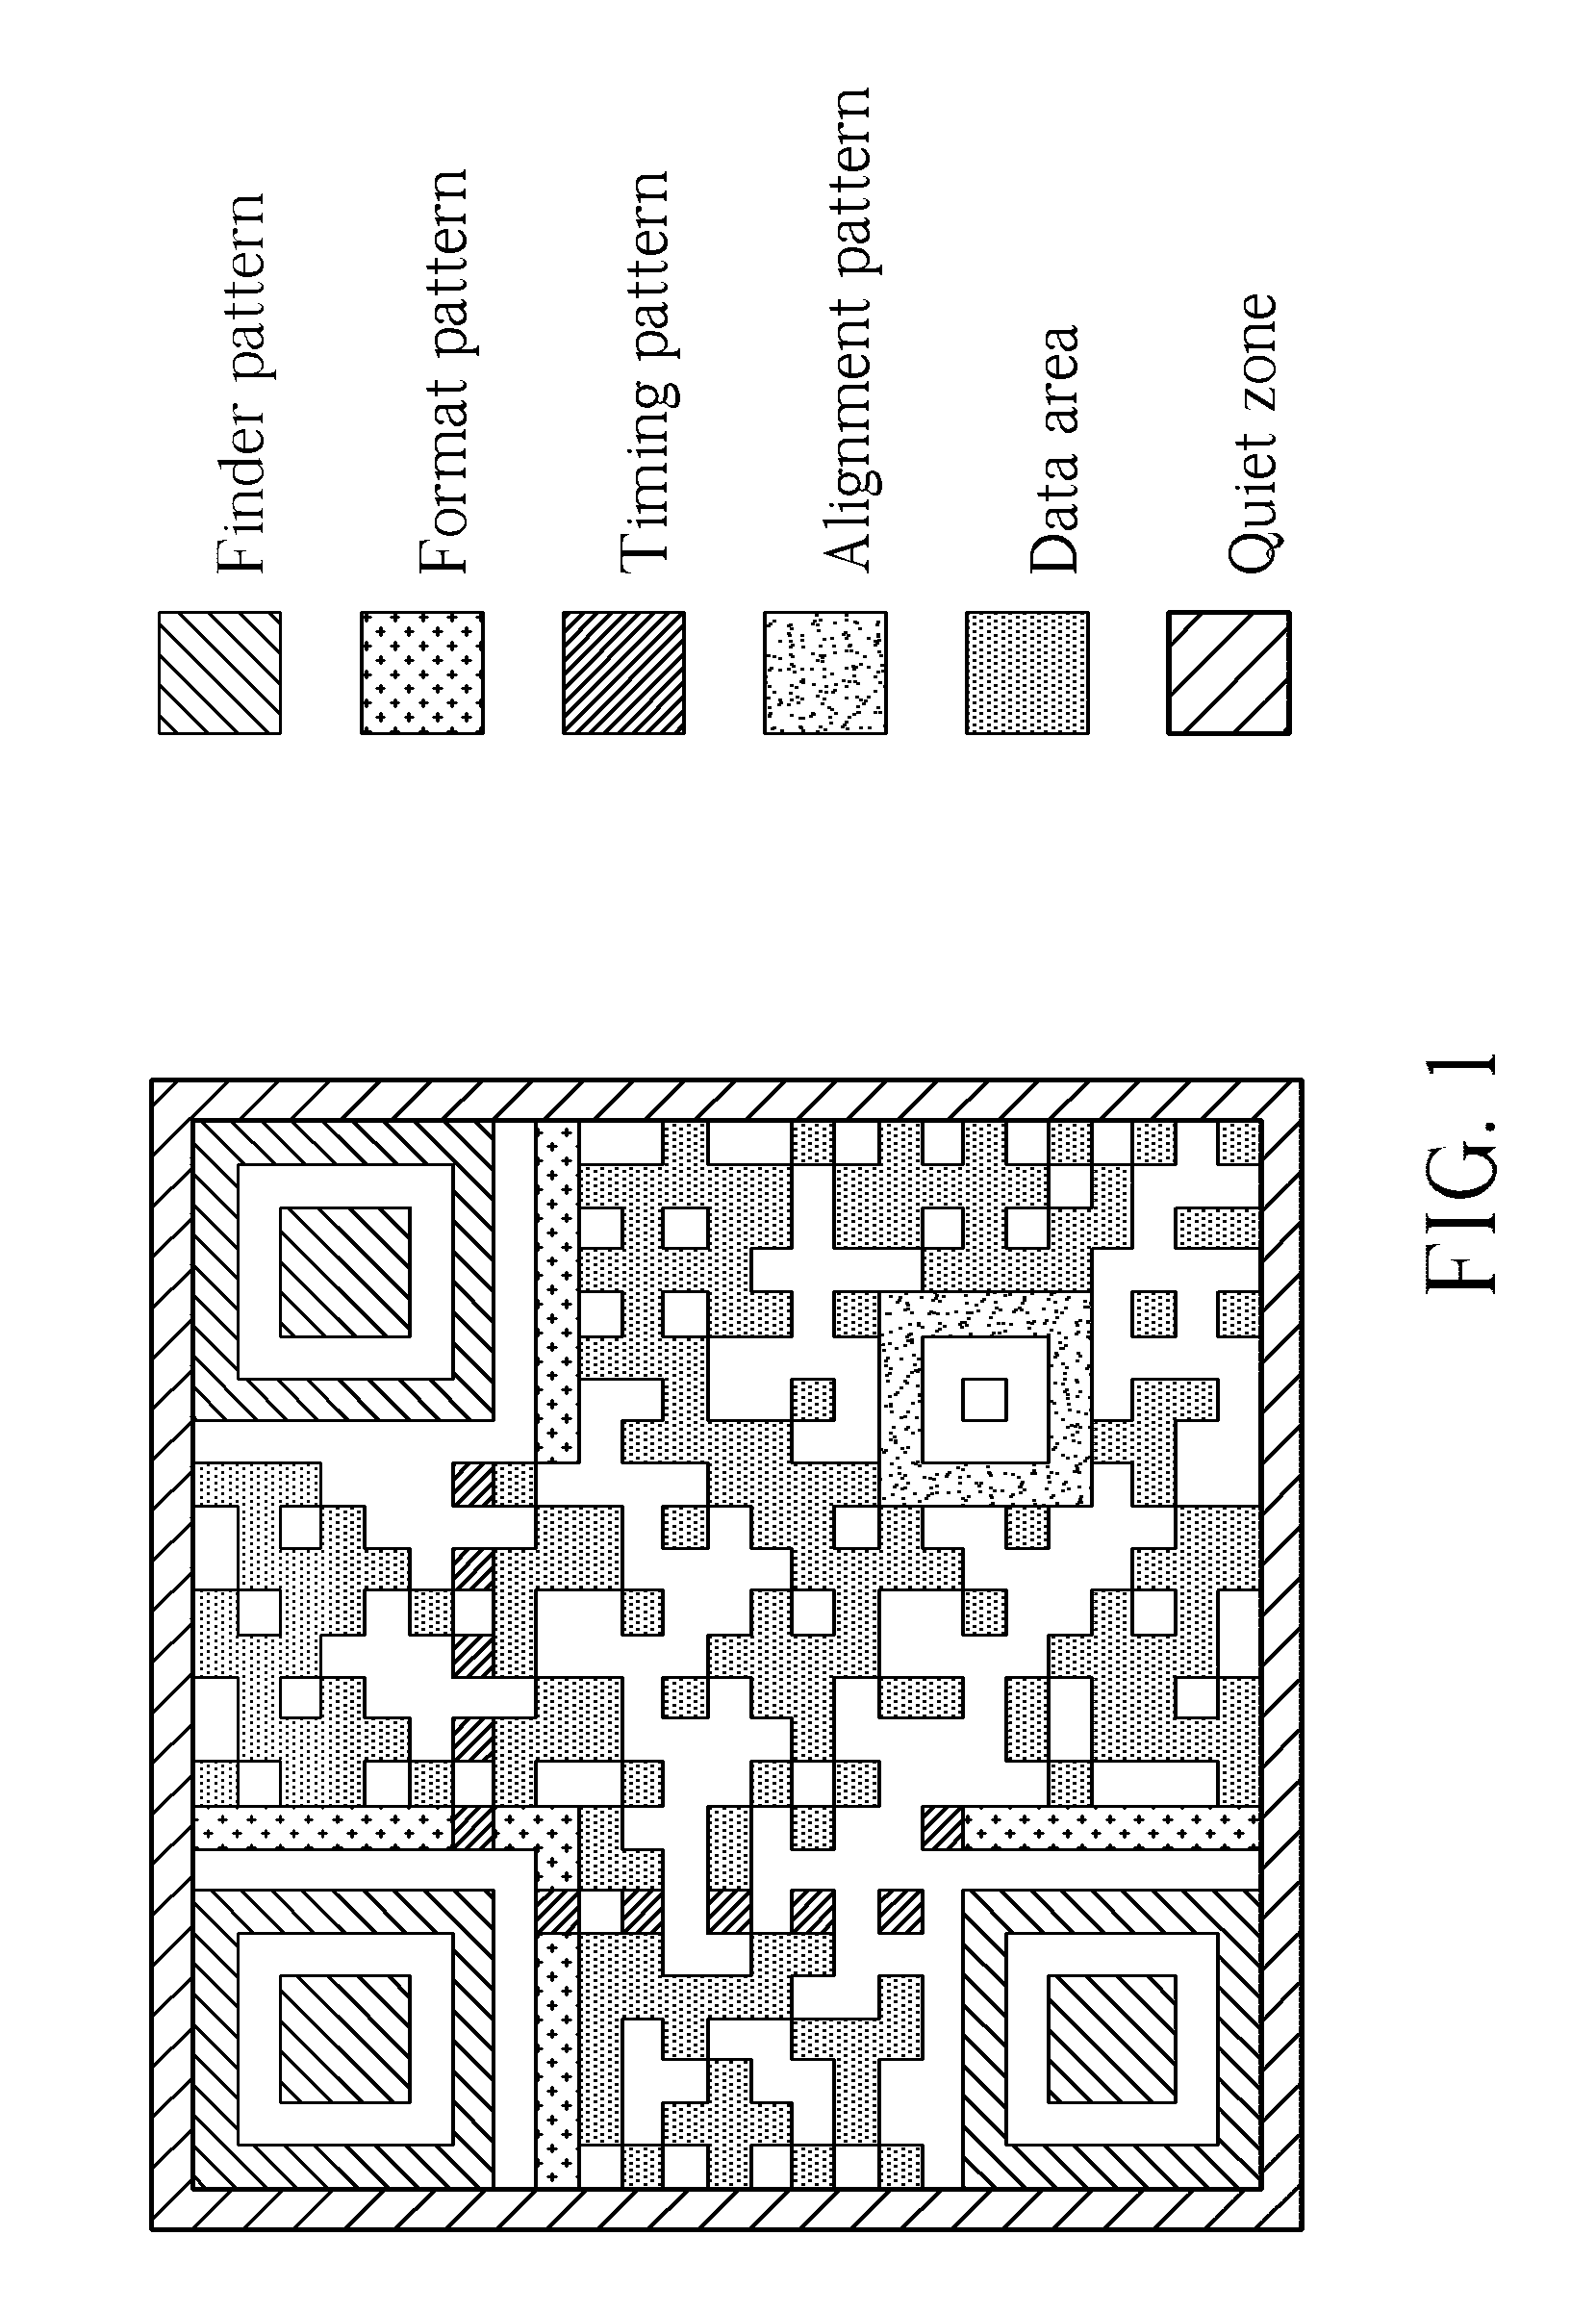 Qr Code Patent Drawing